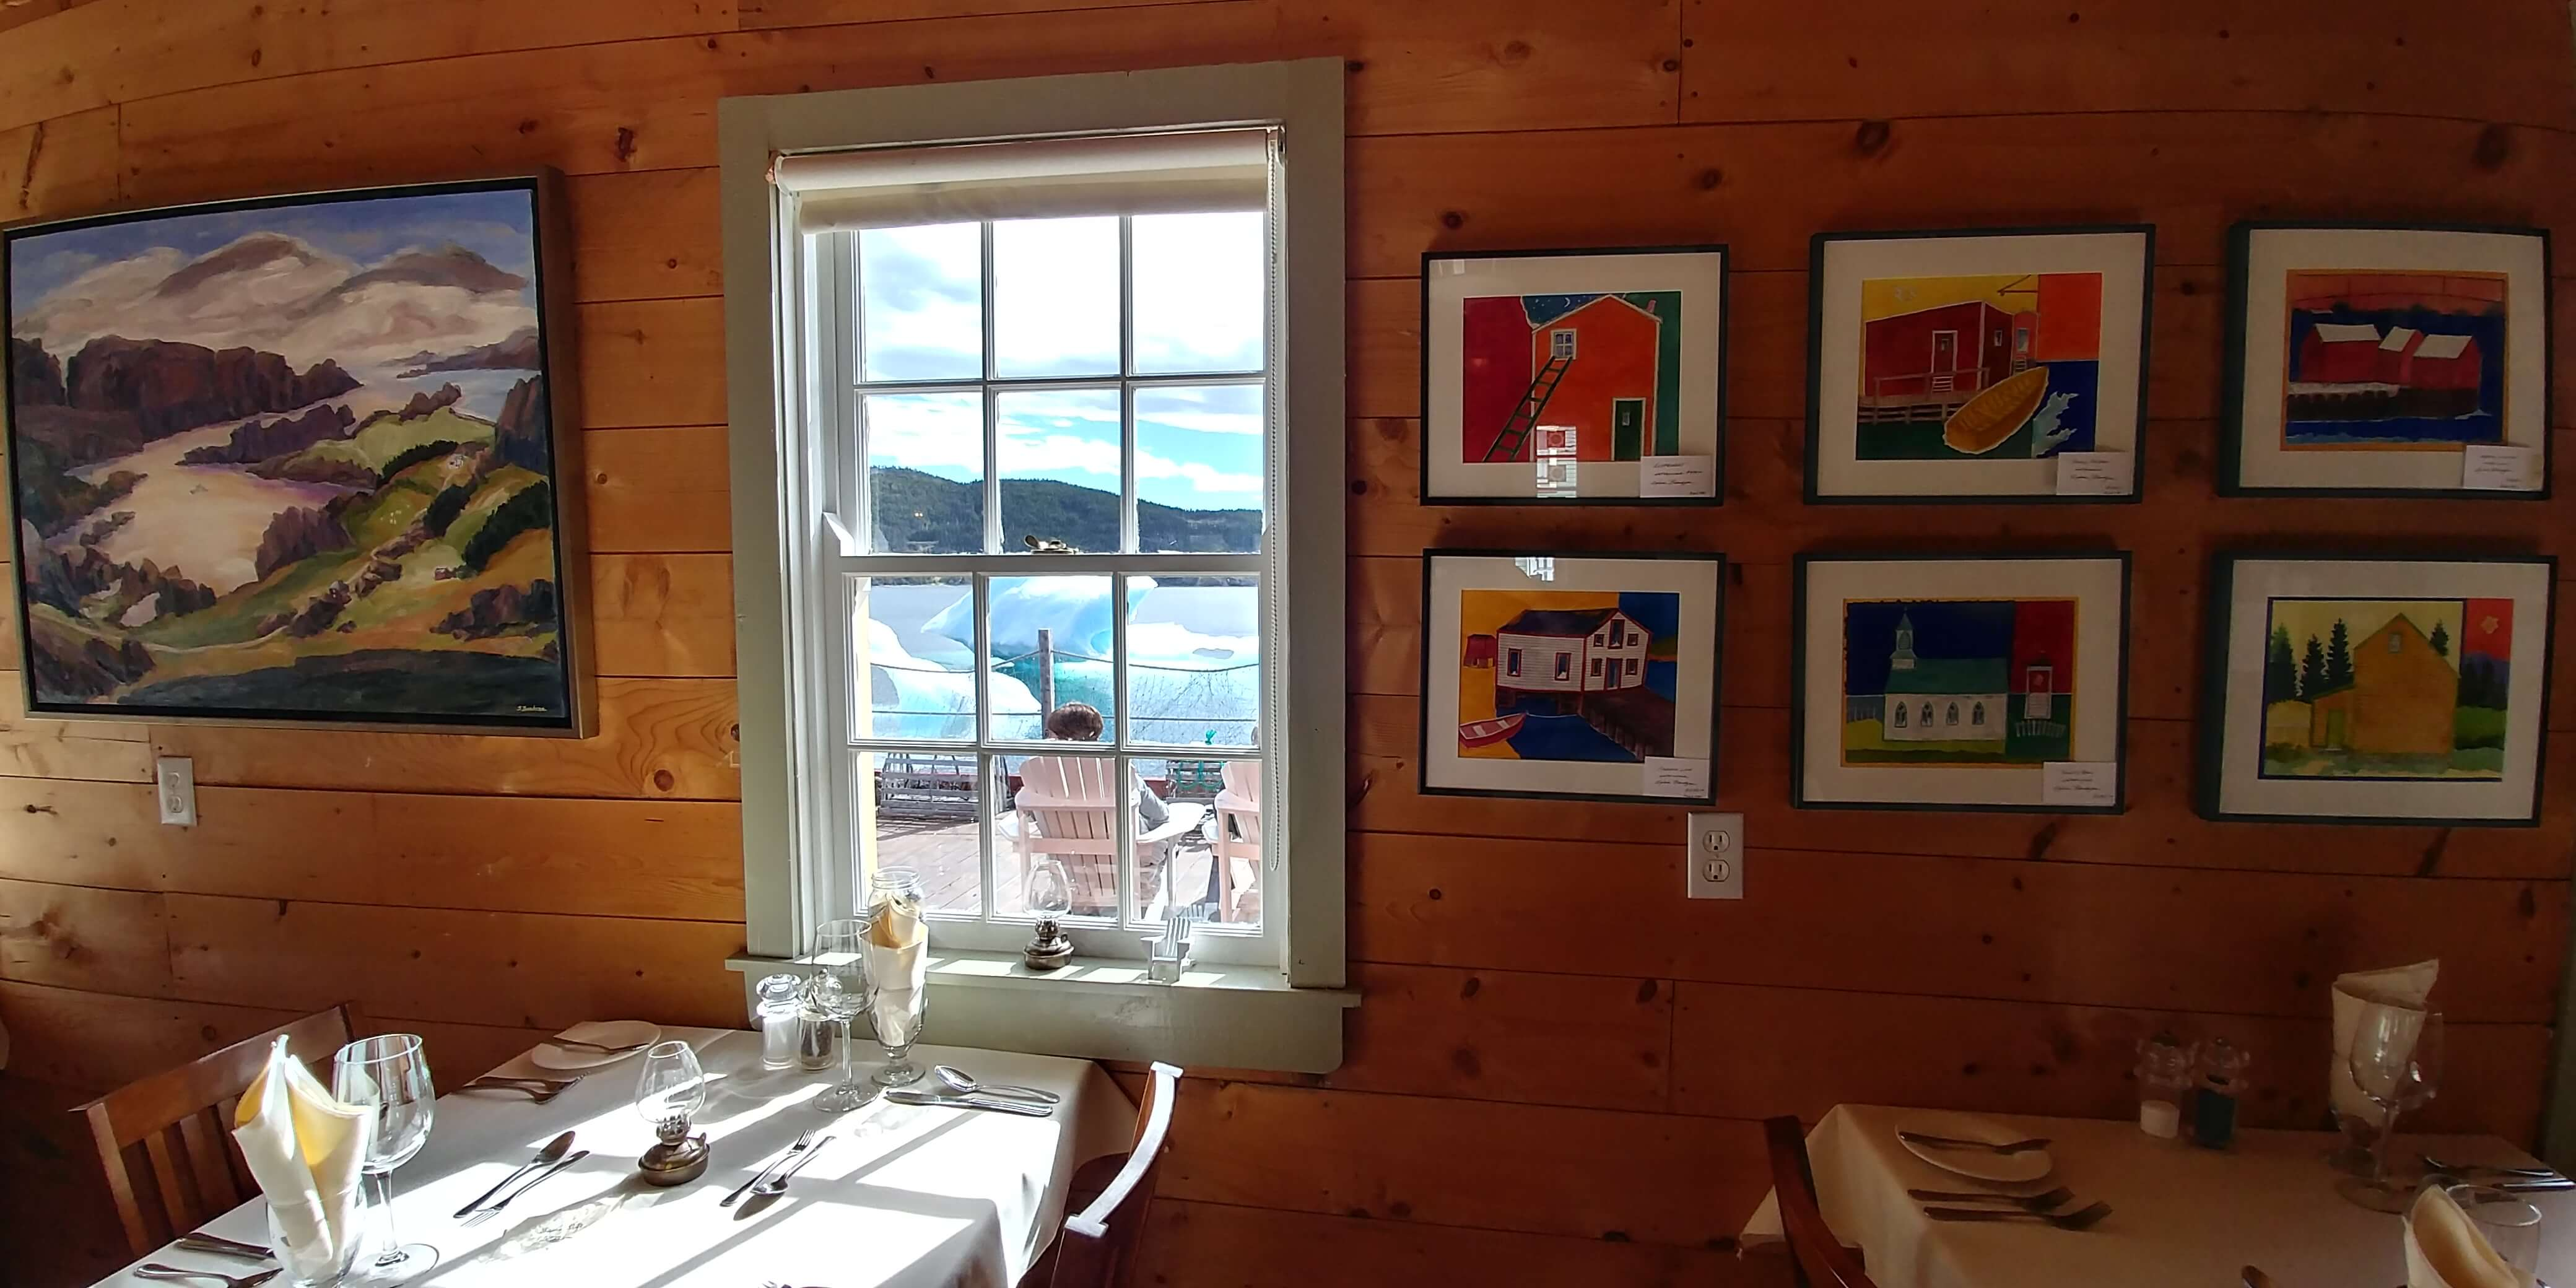 Artwork is displayed on wooden walls adjacent to a window in a dining room